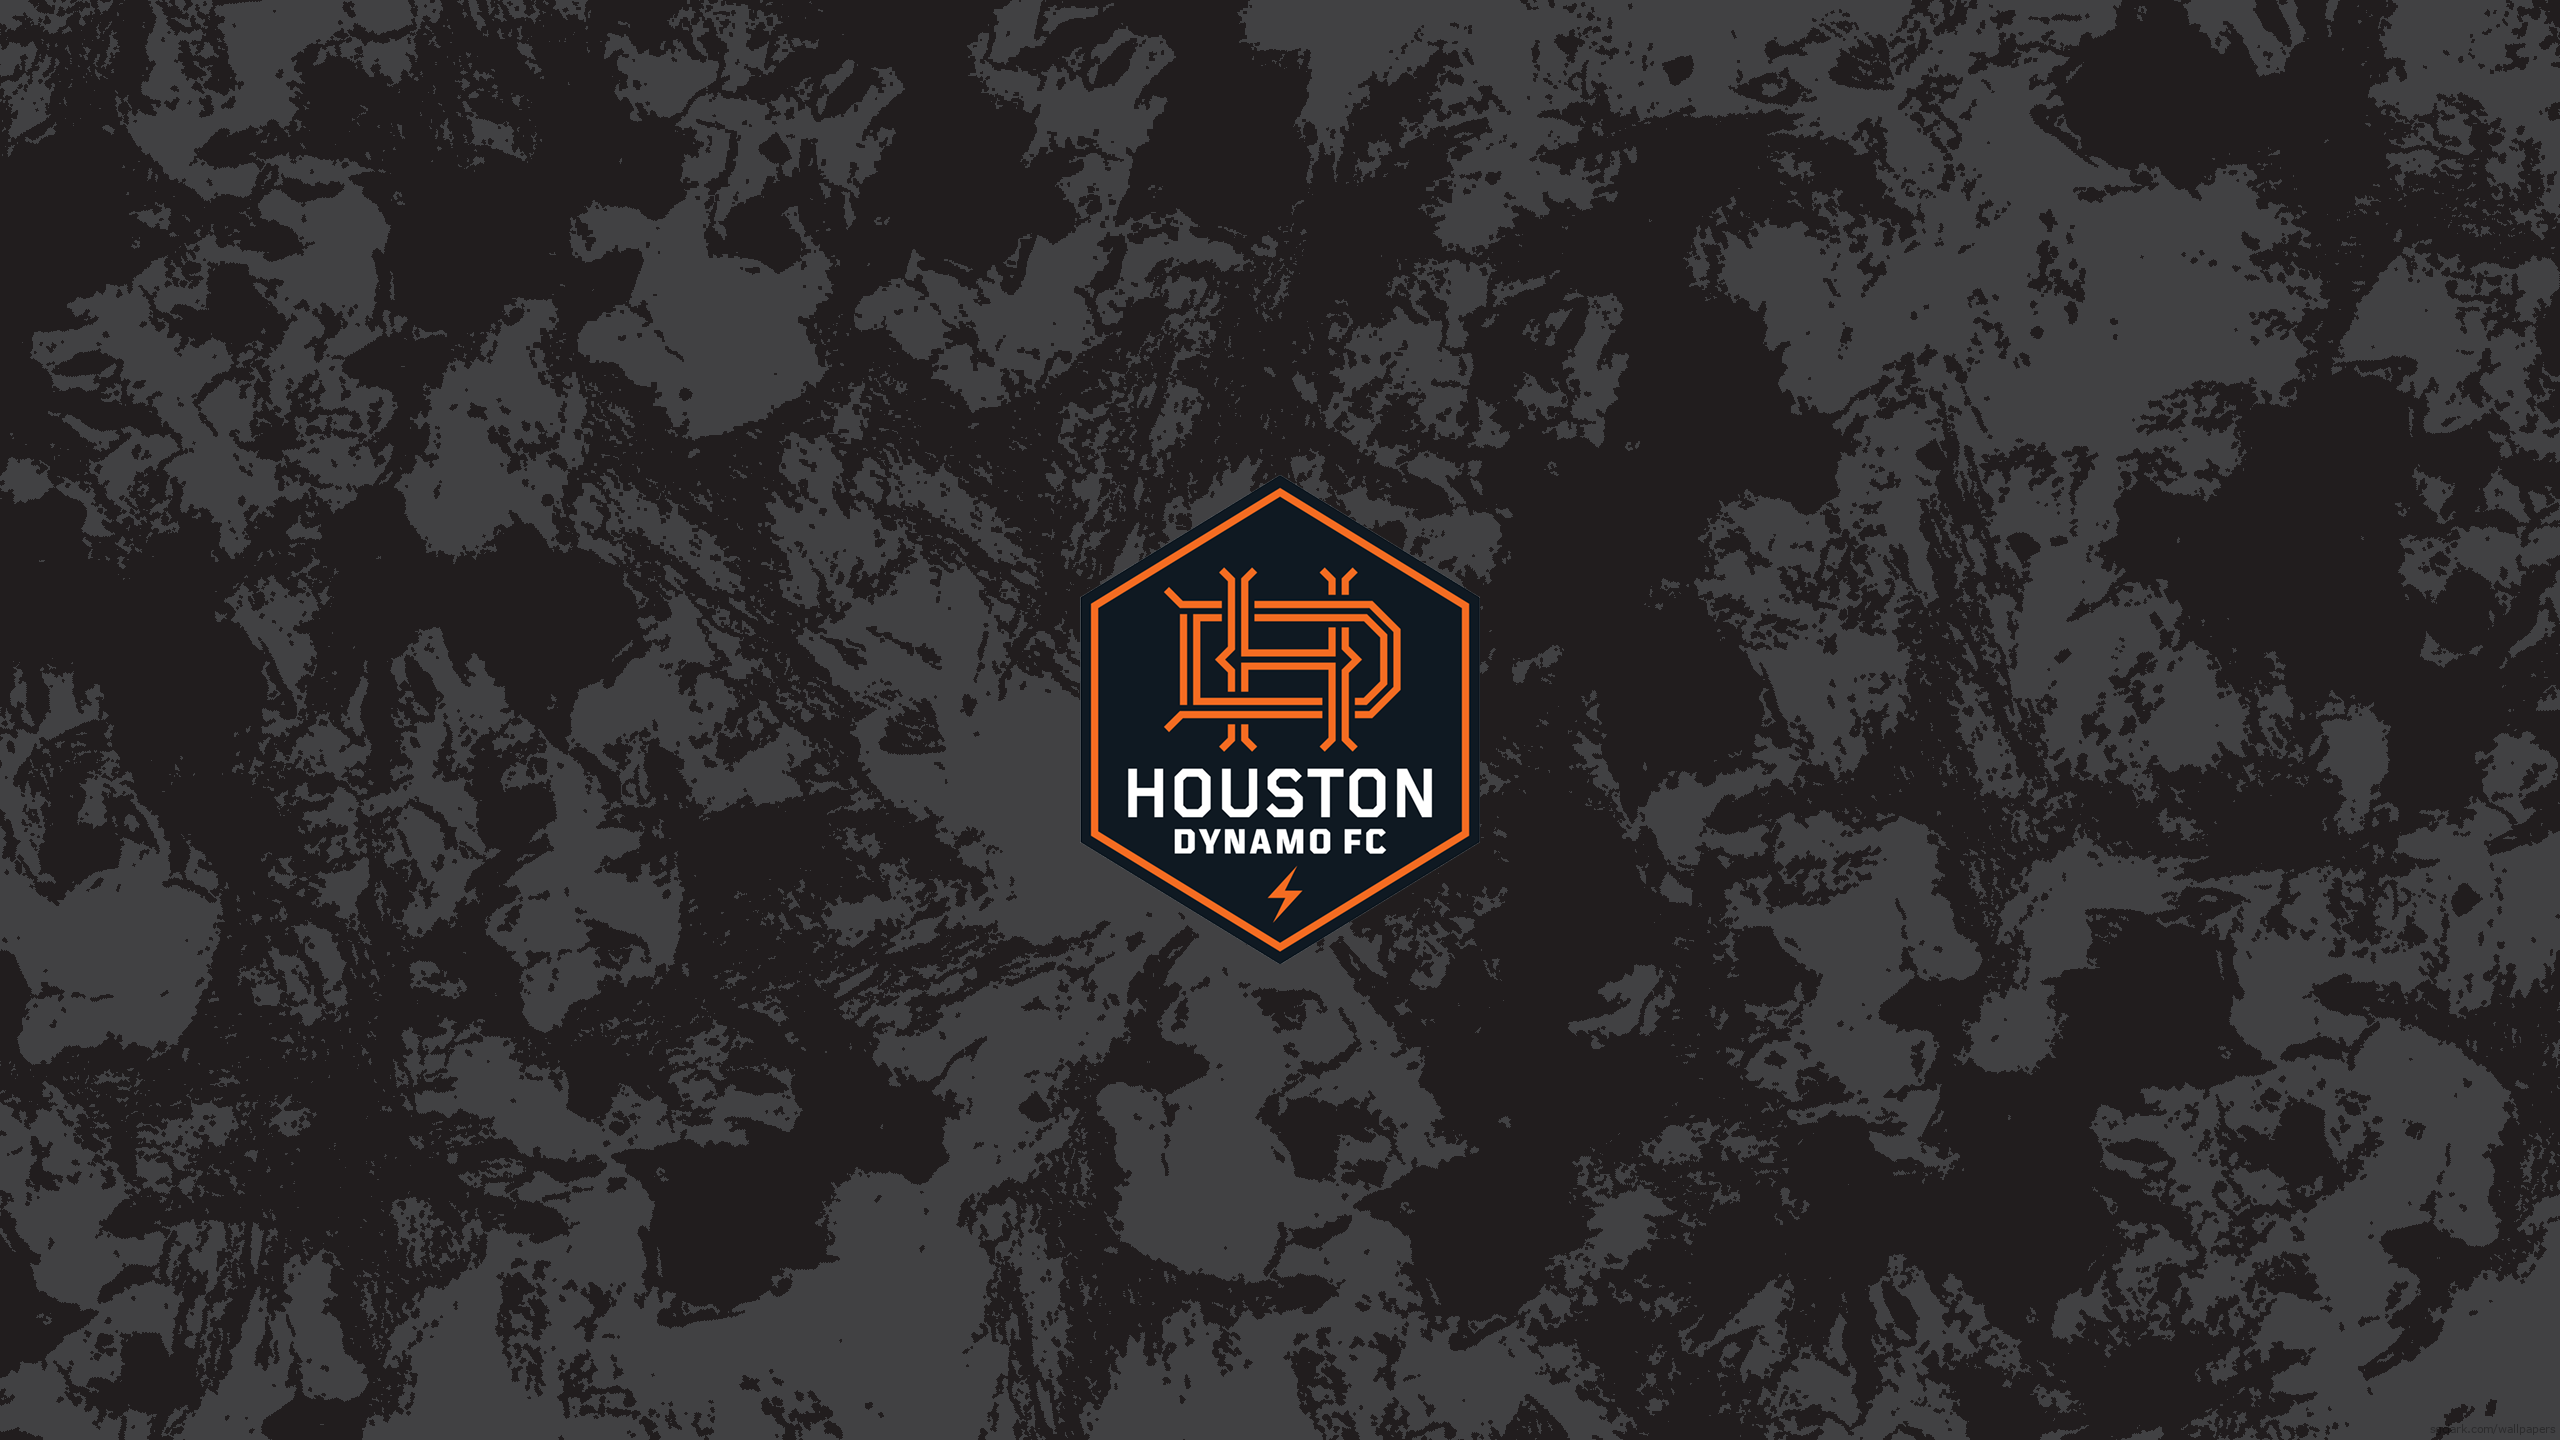 Houston Dynamo (Away